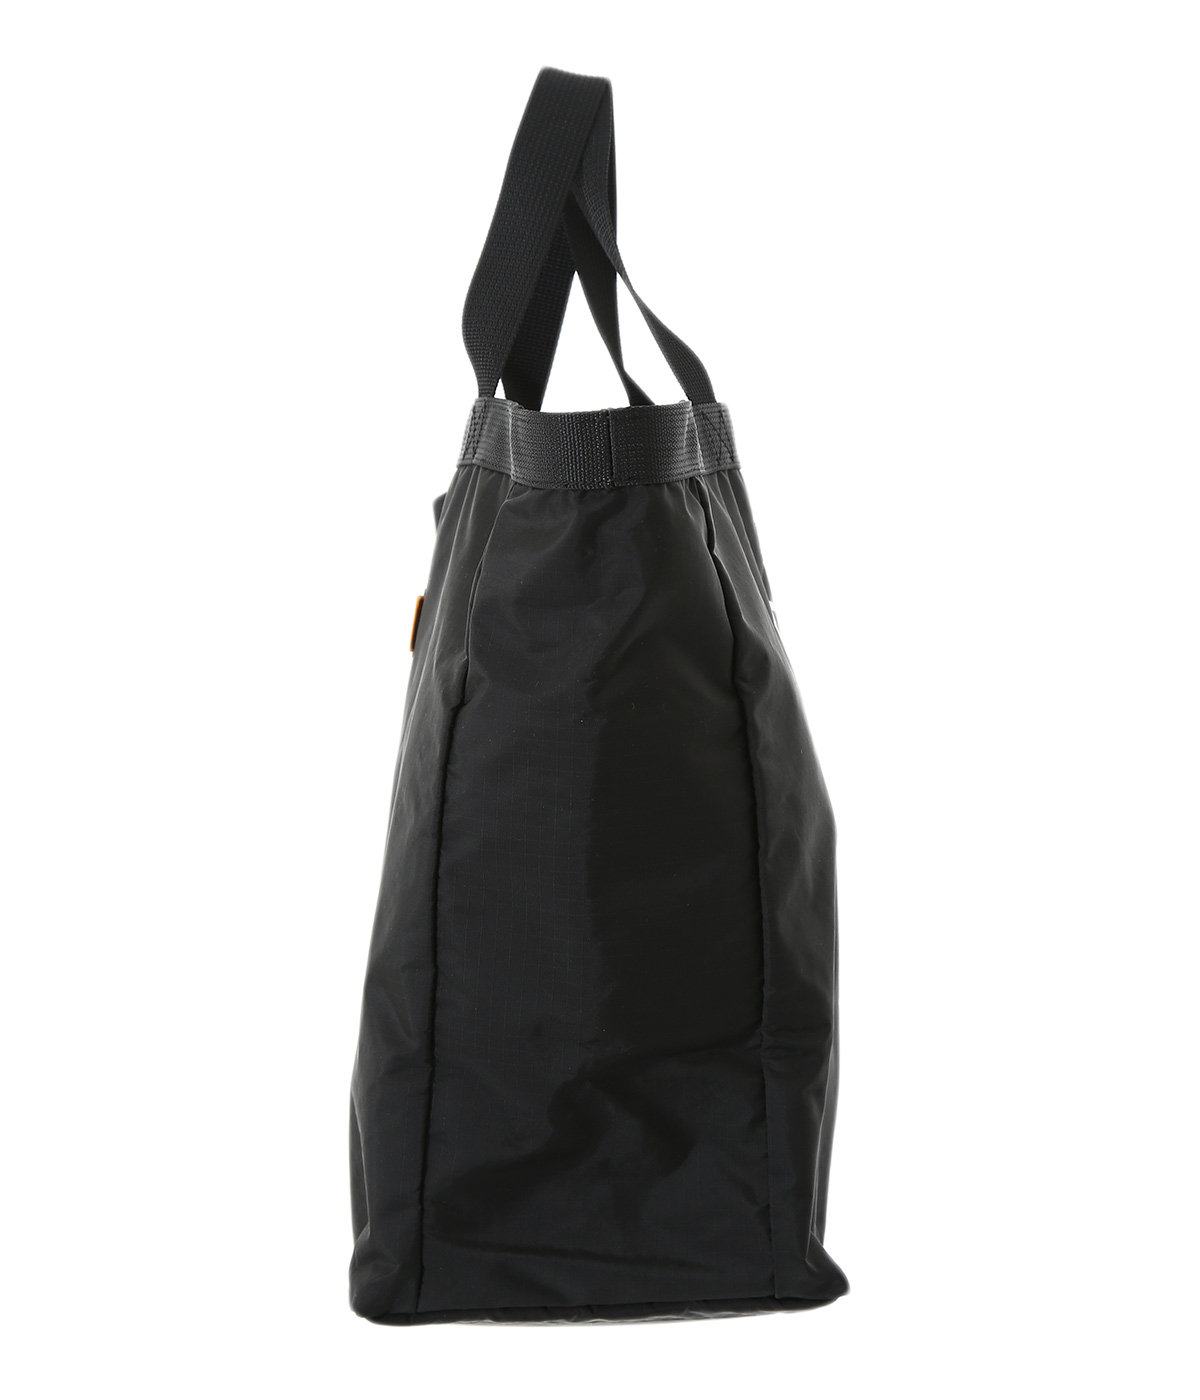 PORTER×SD PACKABLE UTILITY TOTE BAG